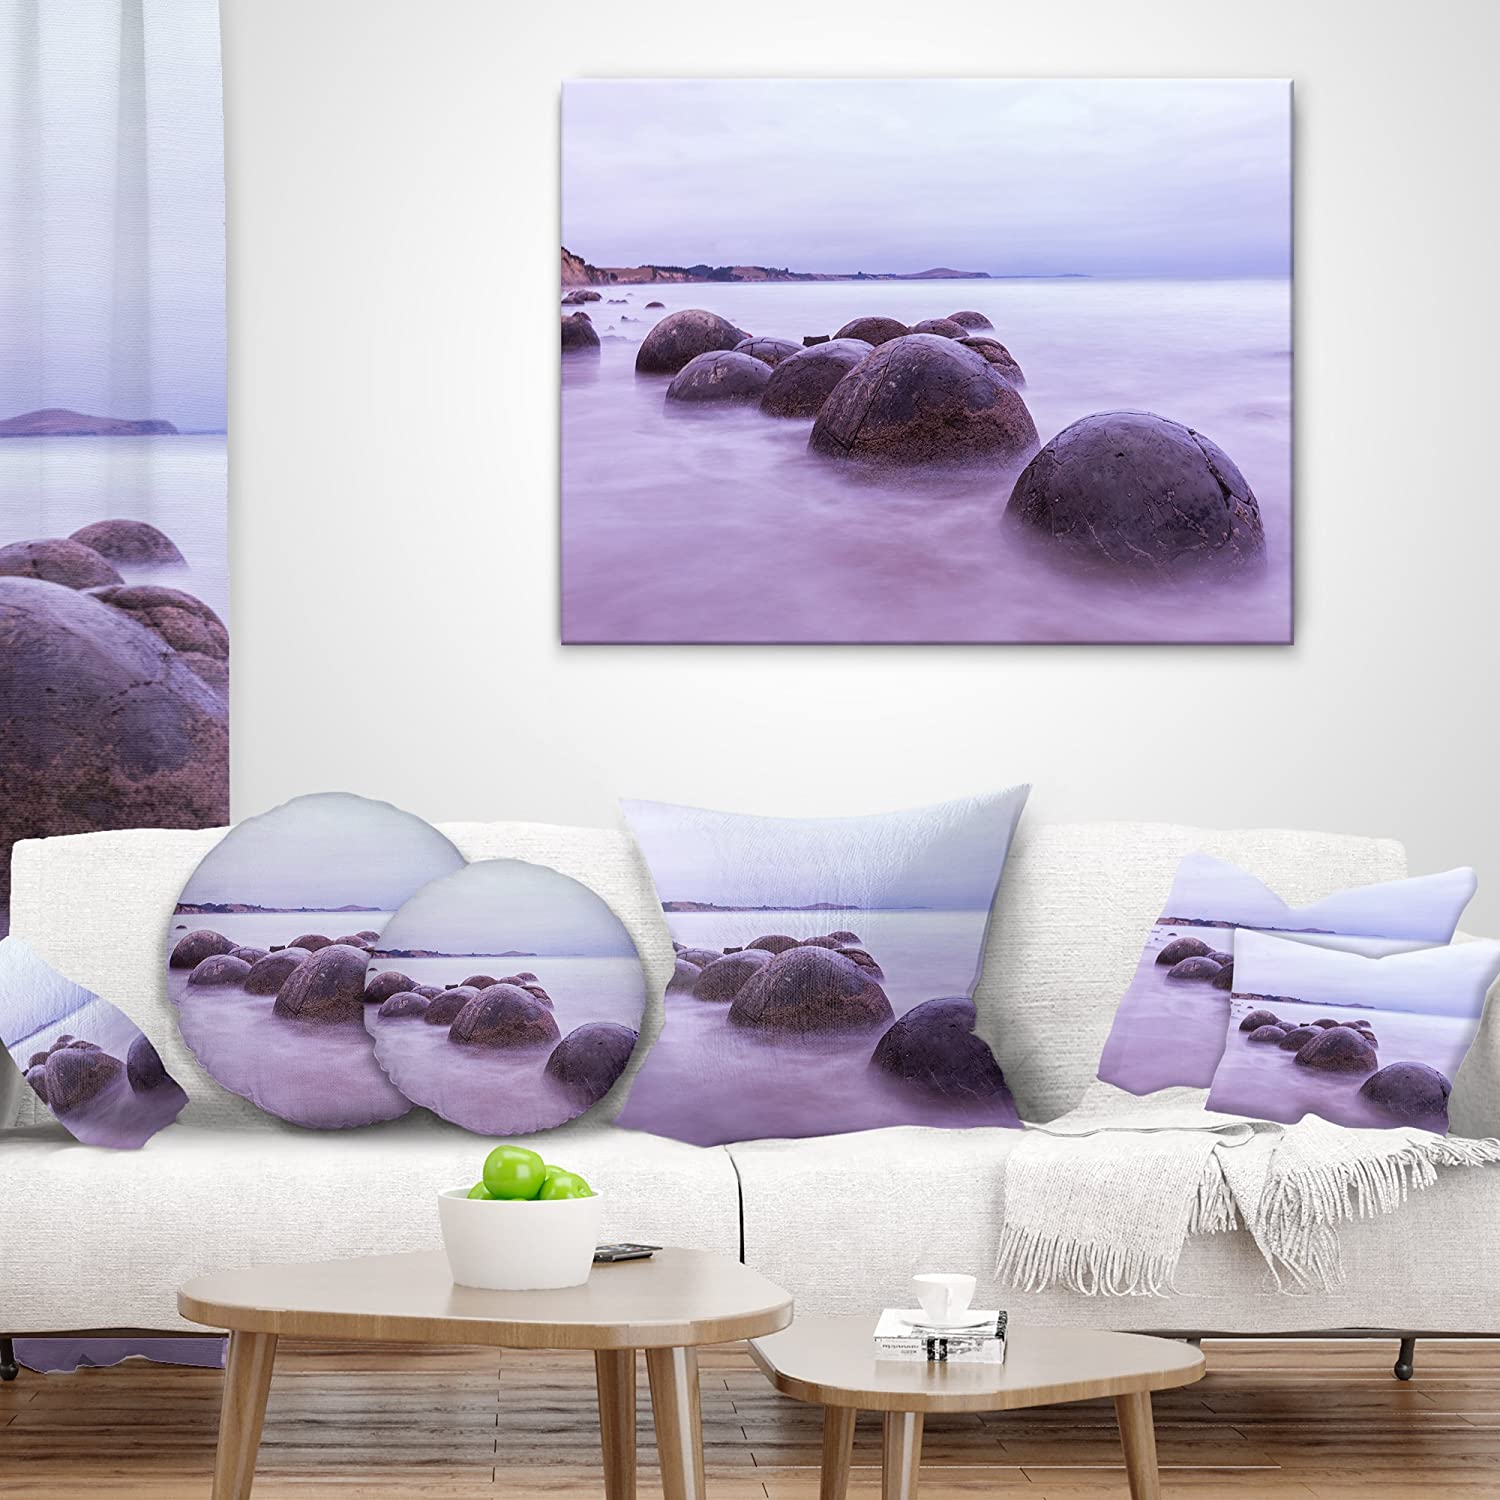 Designart CU9479-18-18 Moeraki Boulders New Zealand Seashore Photo Throw Pillow 18 x 18